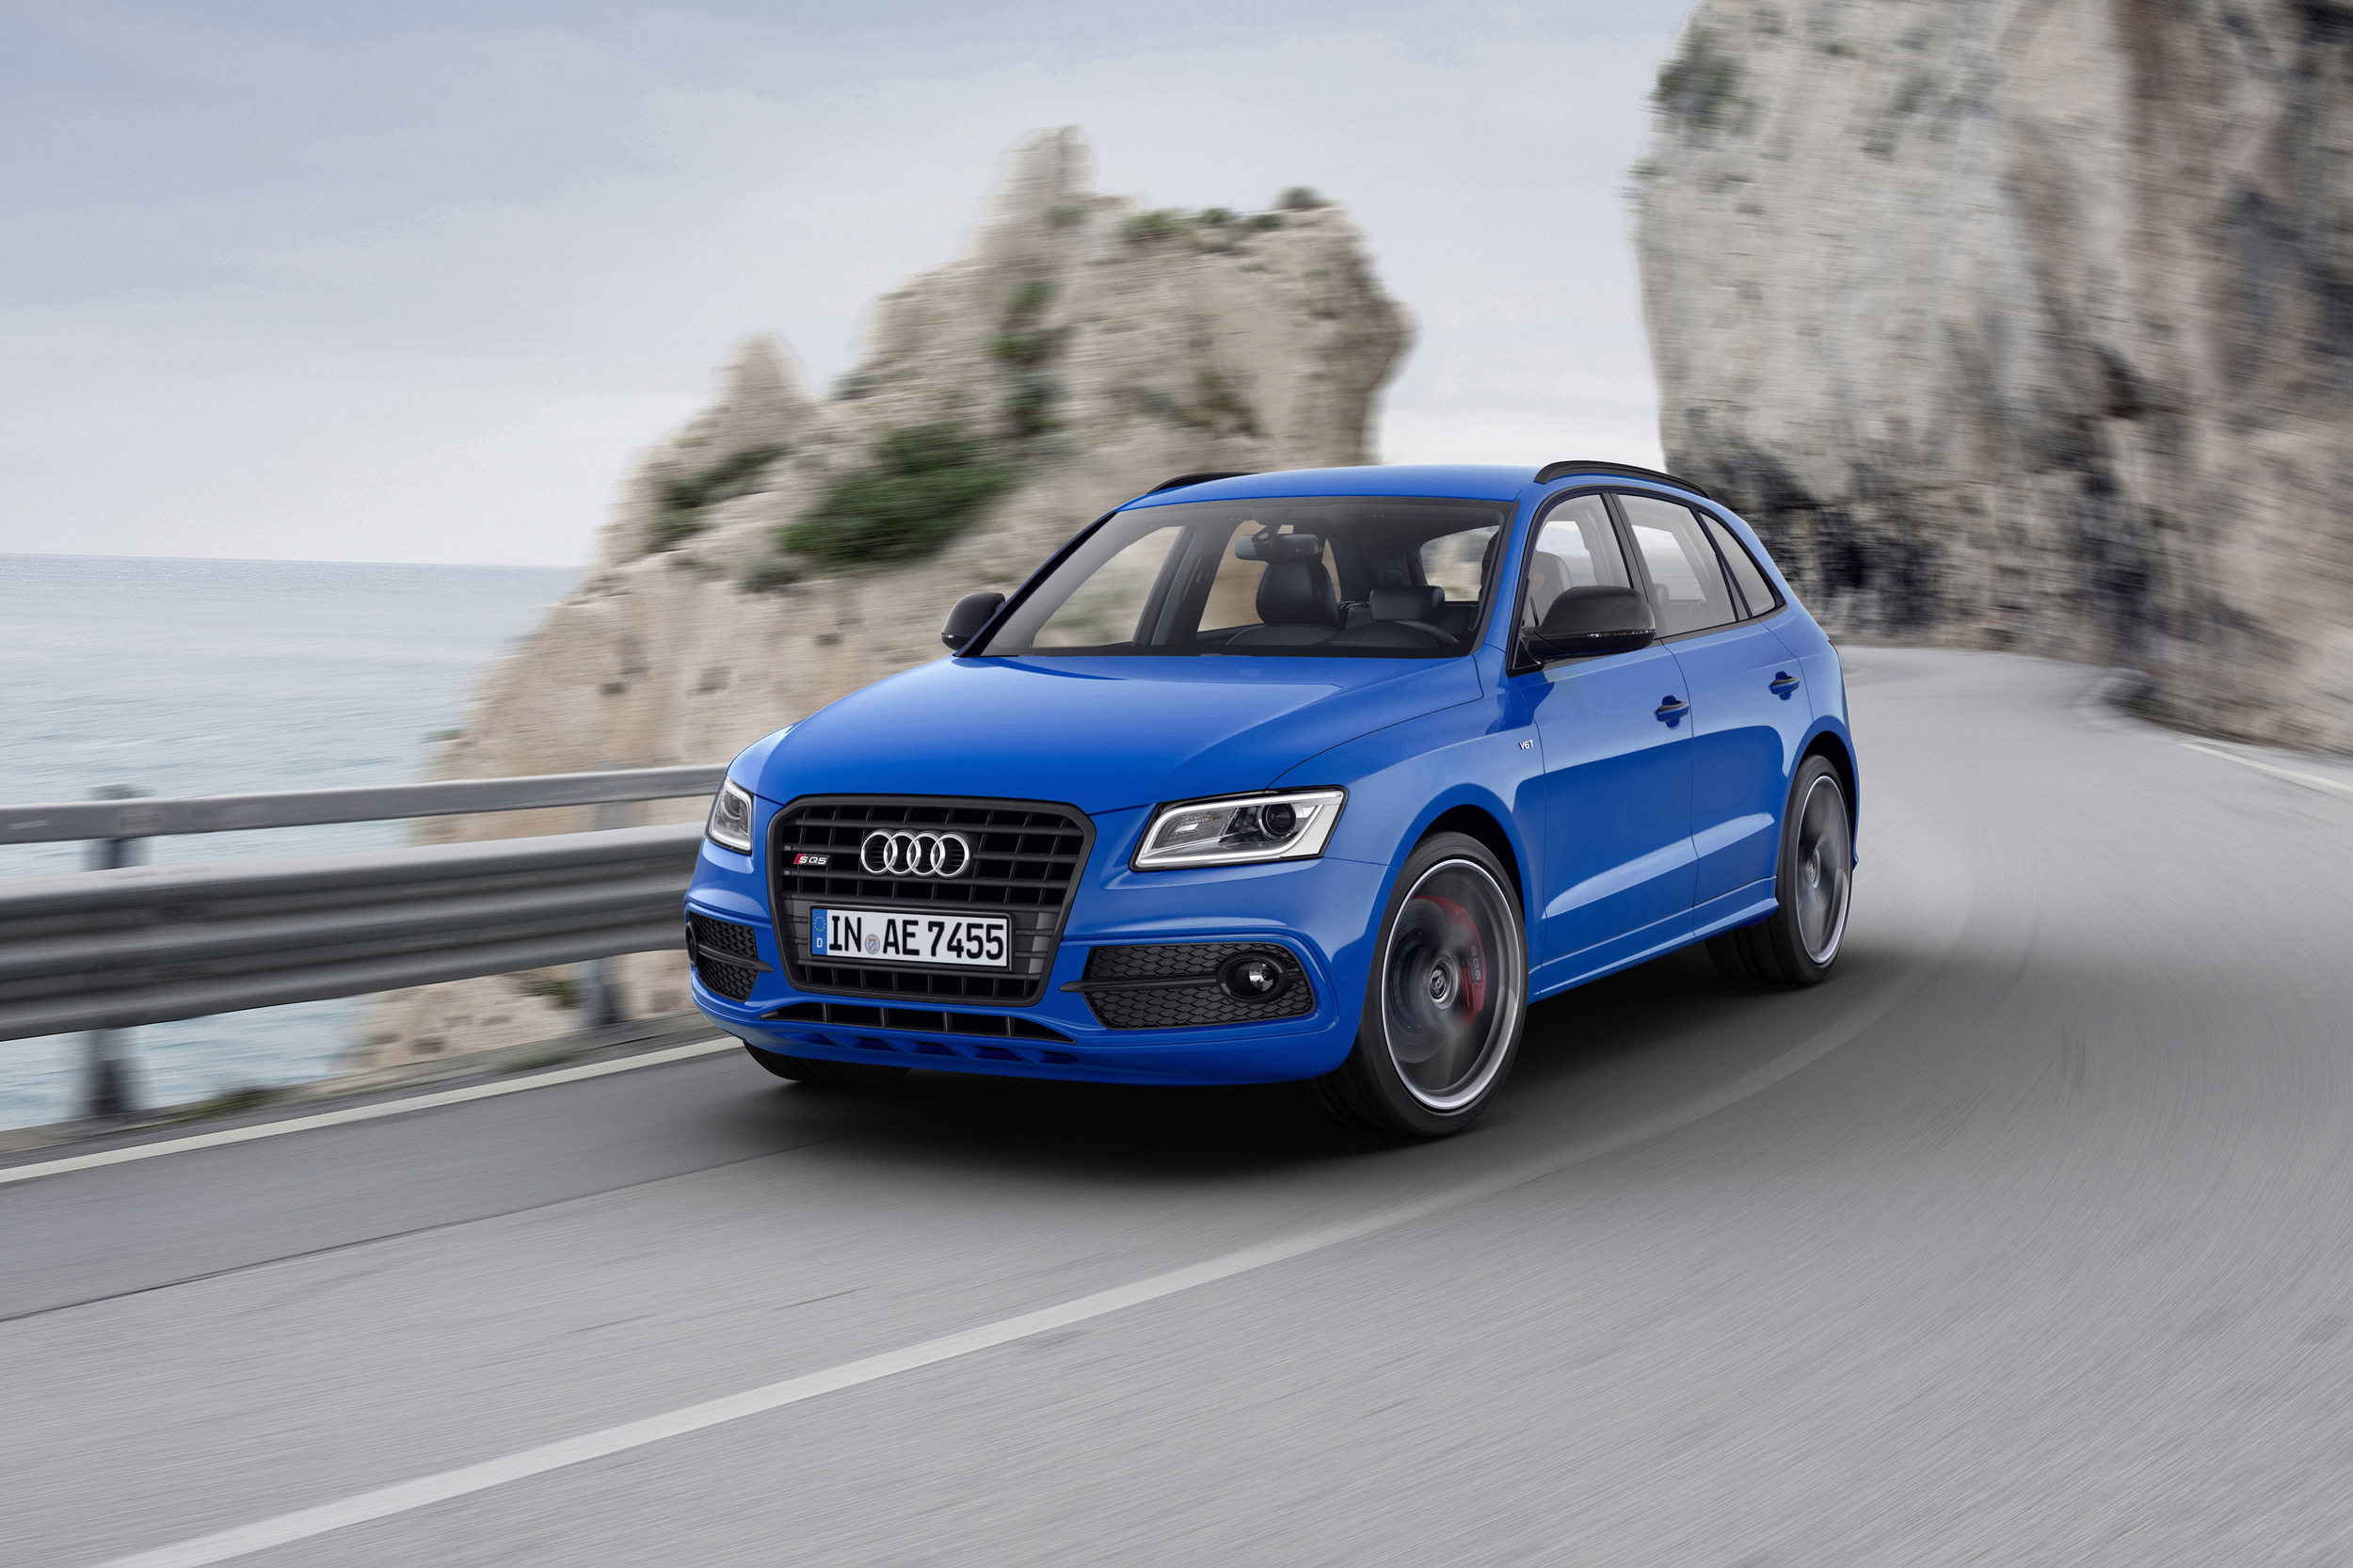 2016 Audi Sq5 Tdi Plus Exterior Preview (Photo 4 of 9)